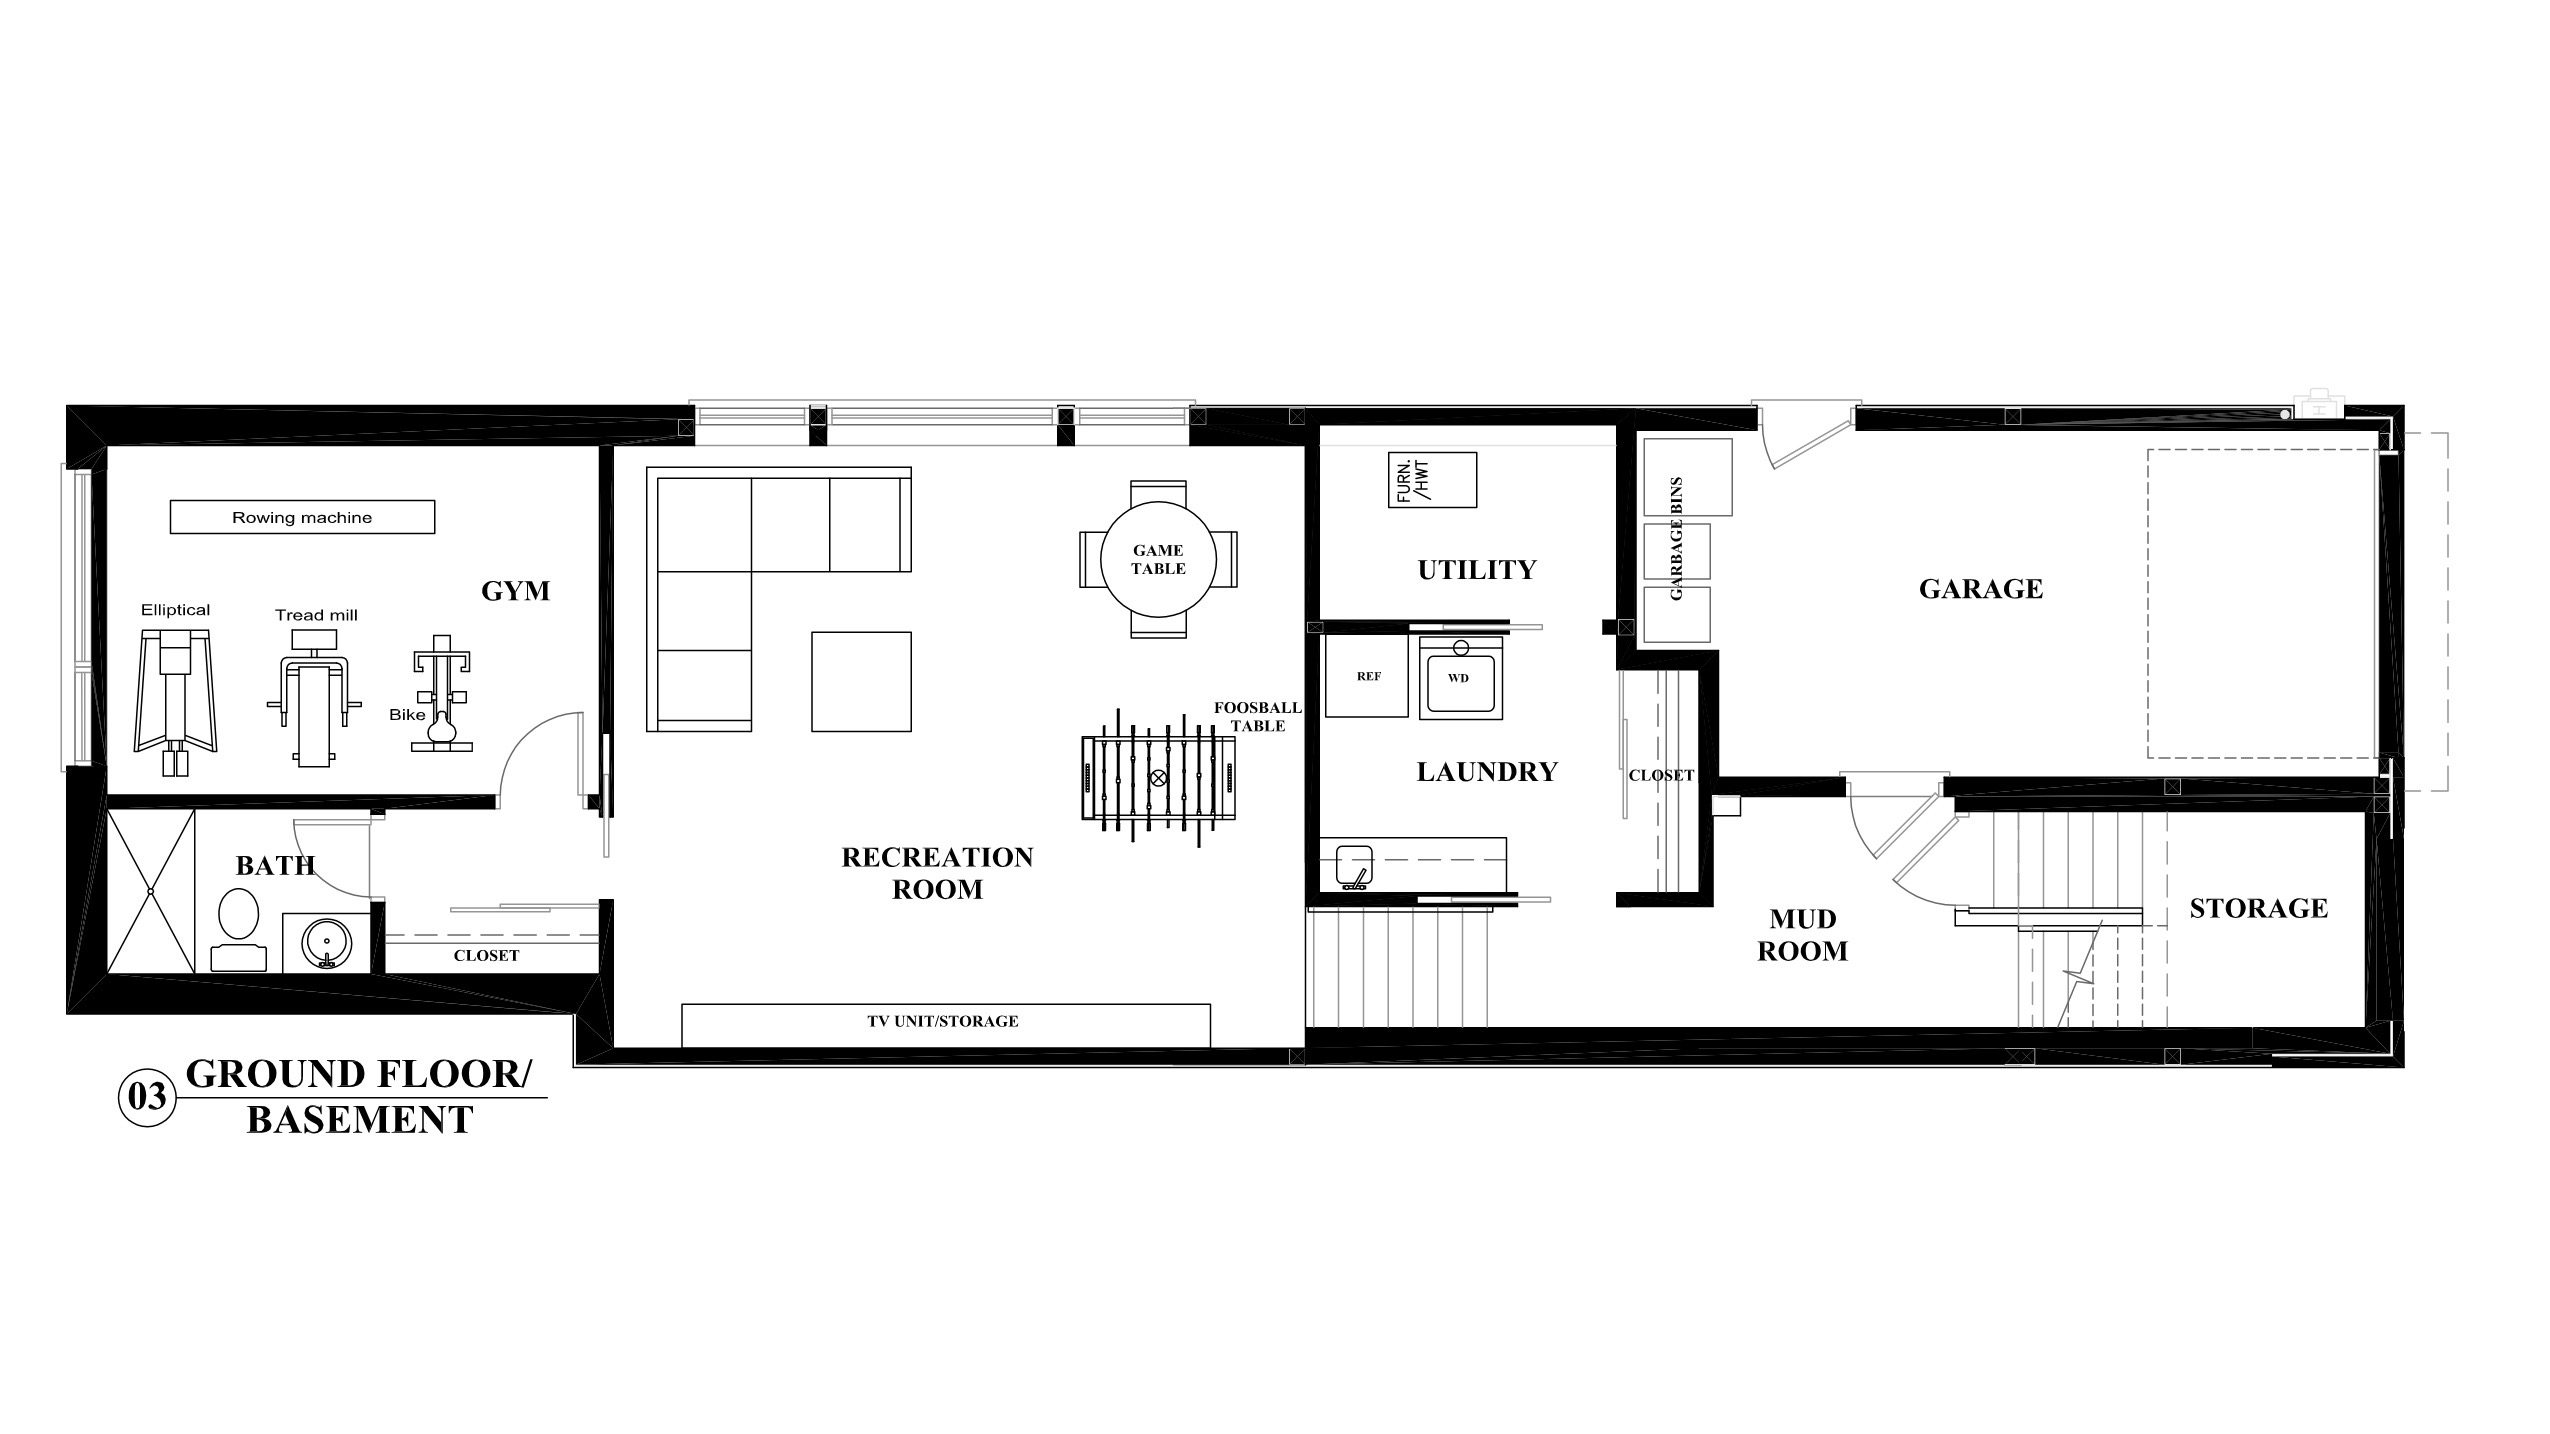 Basement Remodeling Floor Plans Basement Design Floor Plans Floor Plan Ideas